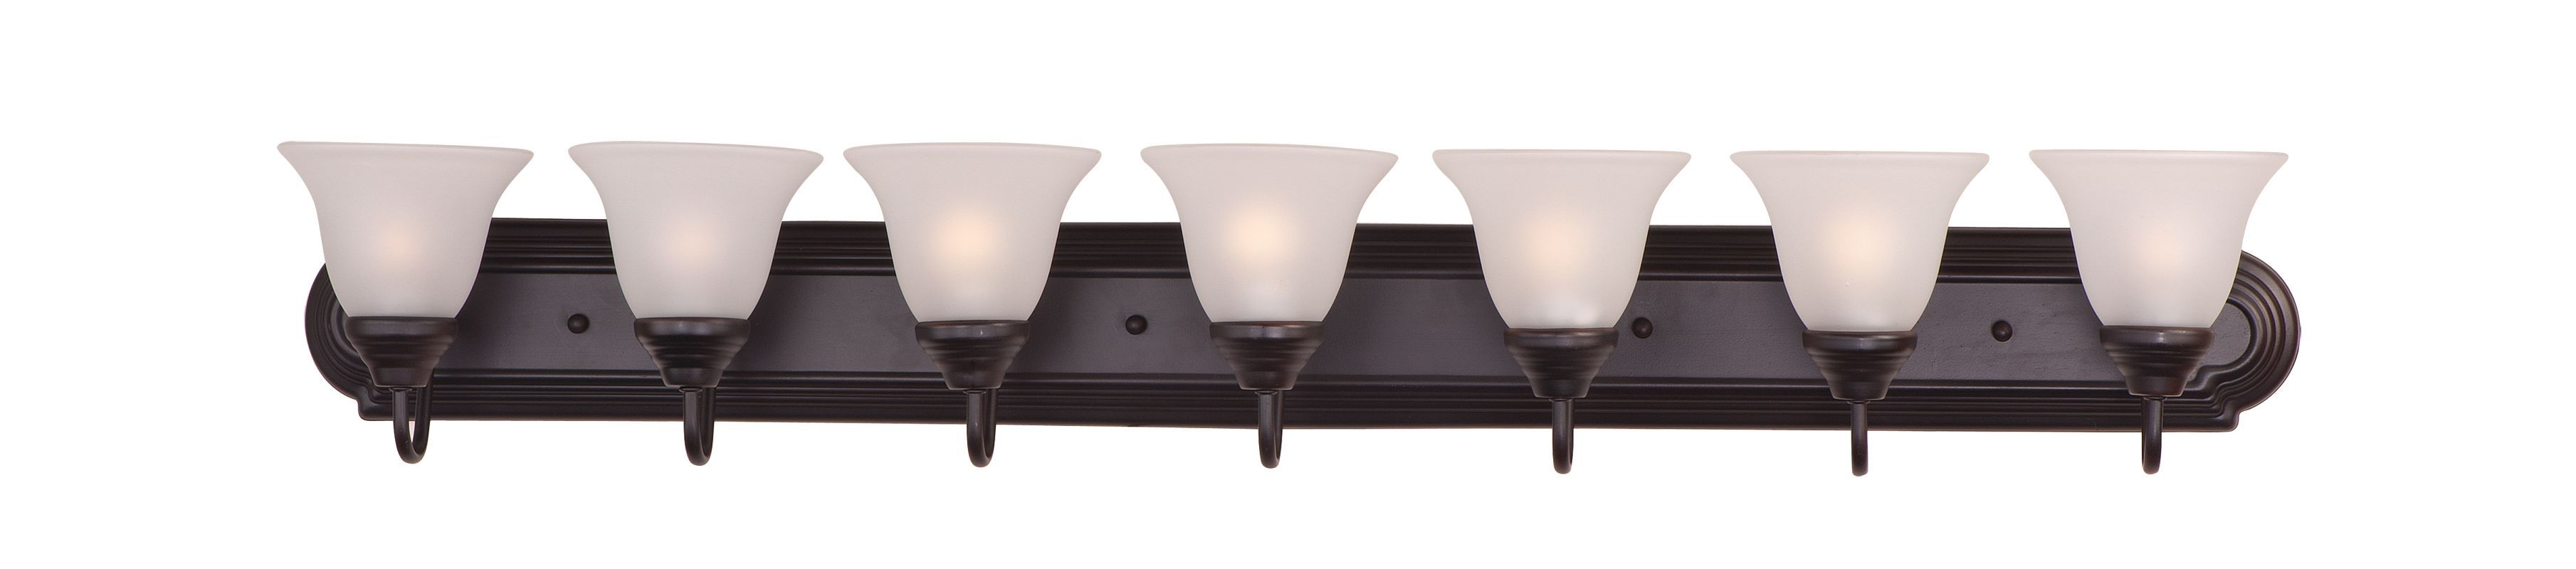 Maxim 8016 7 light 48 wide bathroom fixture from the essentials maxim 8016 7 light 48 wide bathroom fixture from the essentials 801x collecti oil aloadofball Gallery